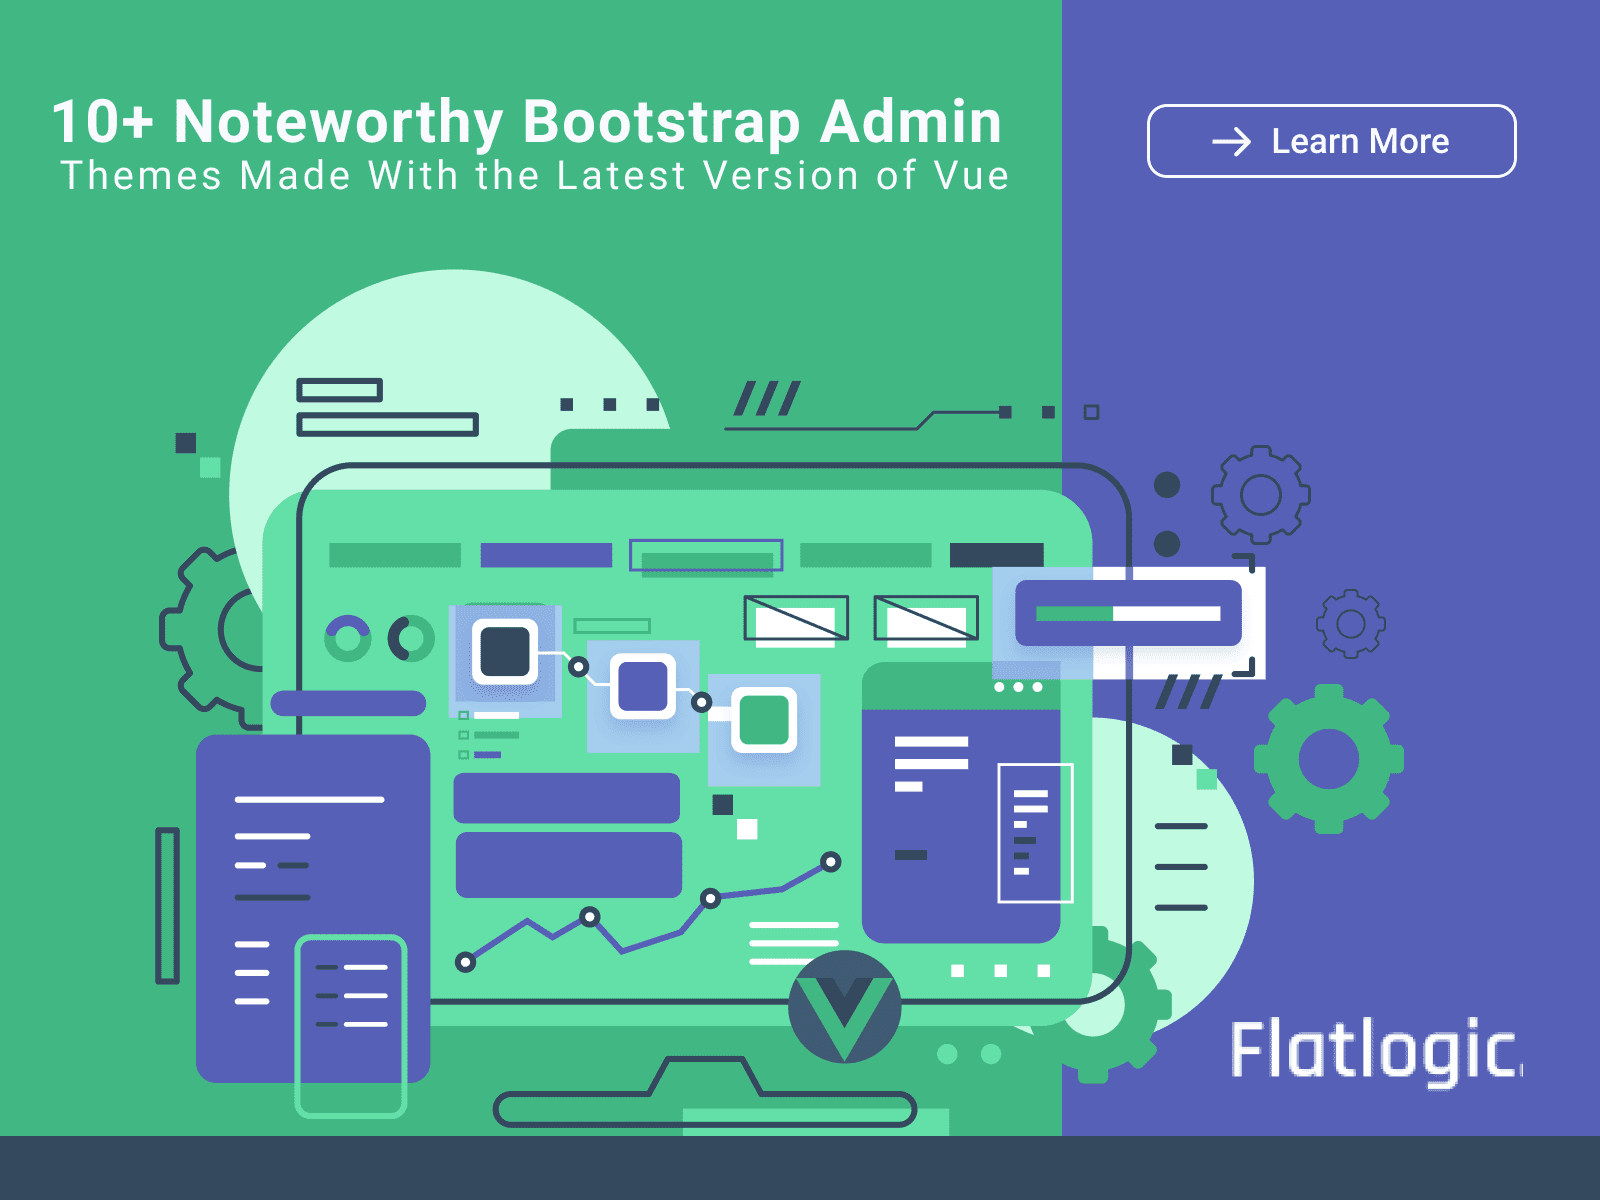 10+ Noteworthy Bootstrap Admin Themes Made With the Latest Version of Vue